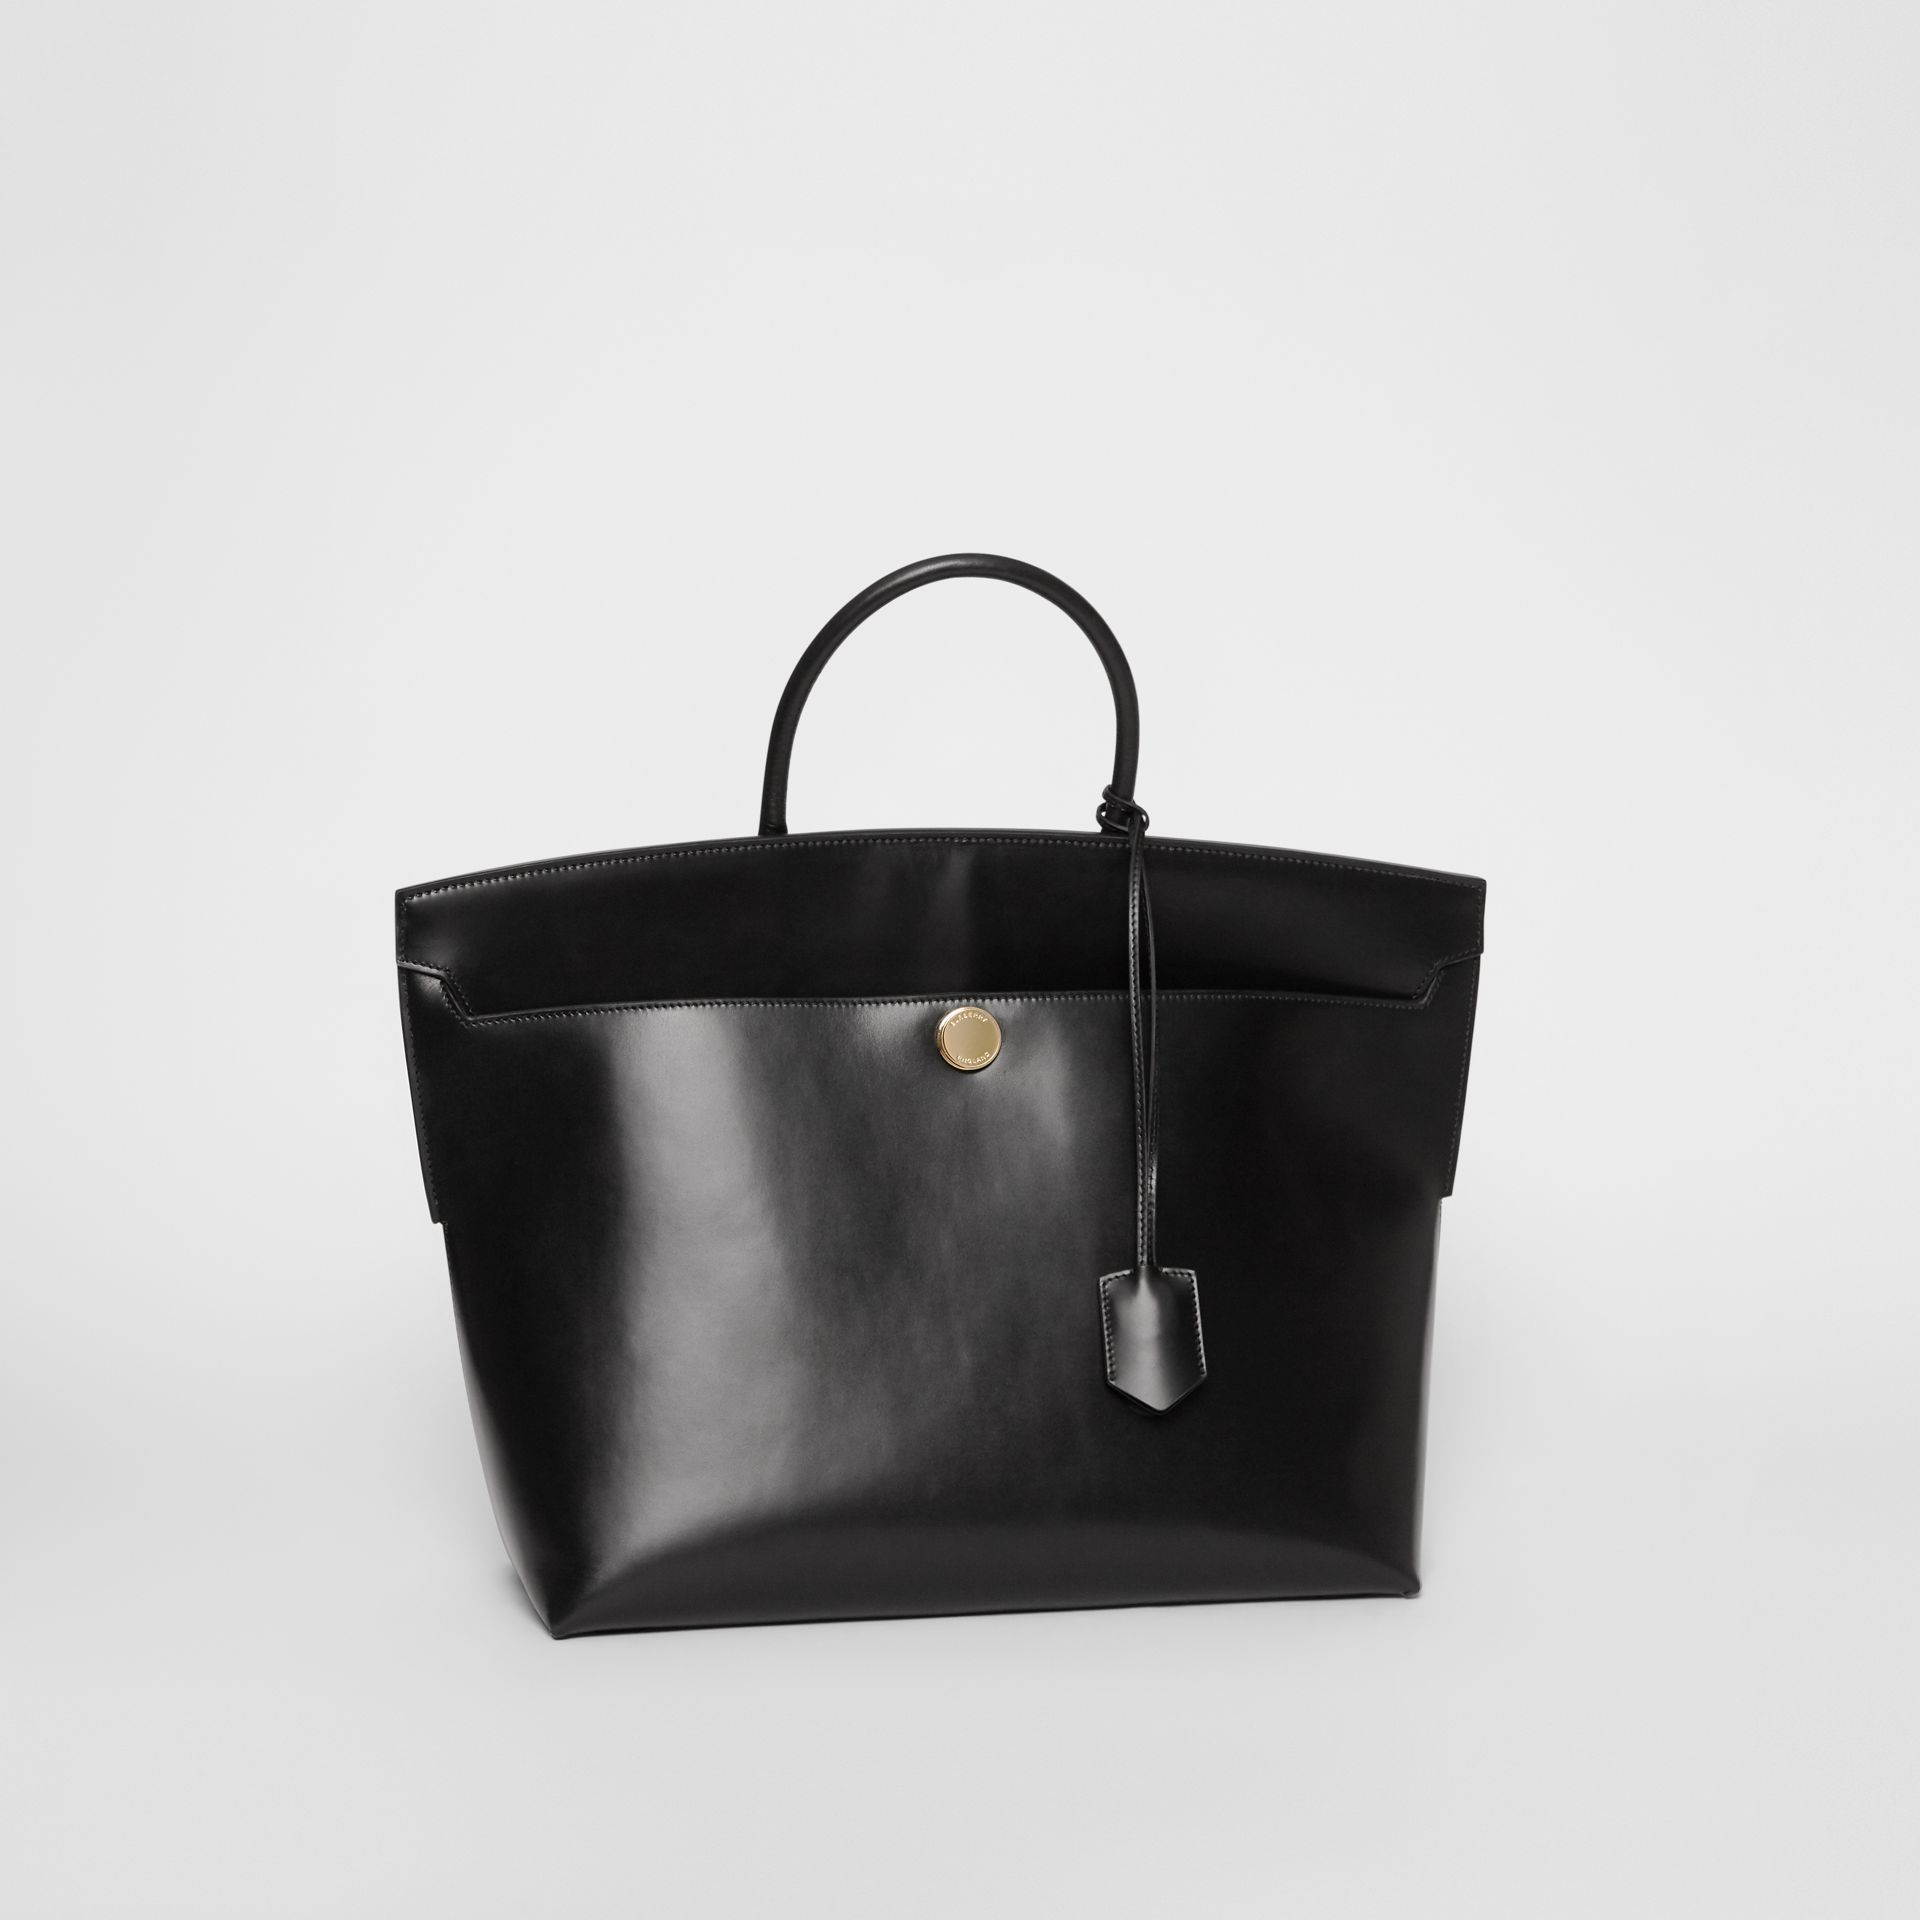 Leather Society Top Handle Bag in Black - Women | Burberry United States - gallery image 6